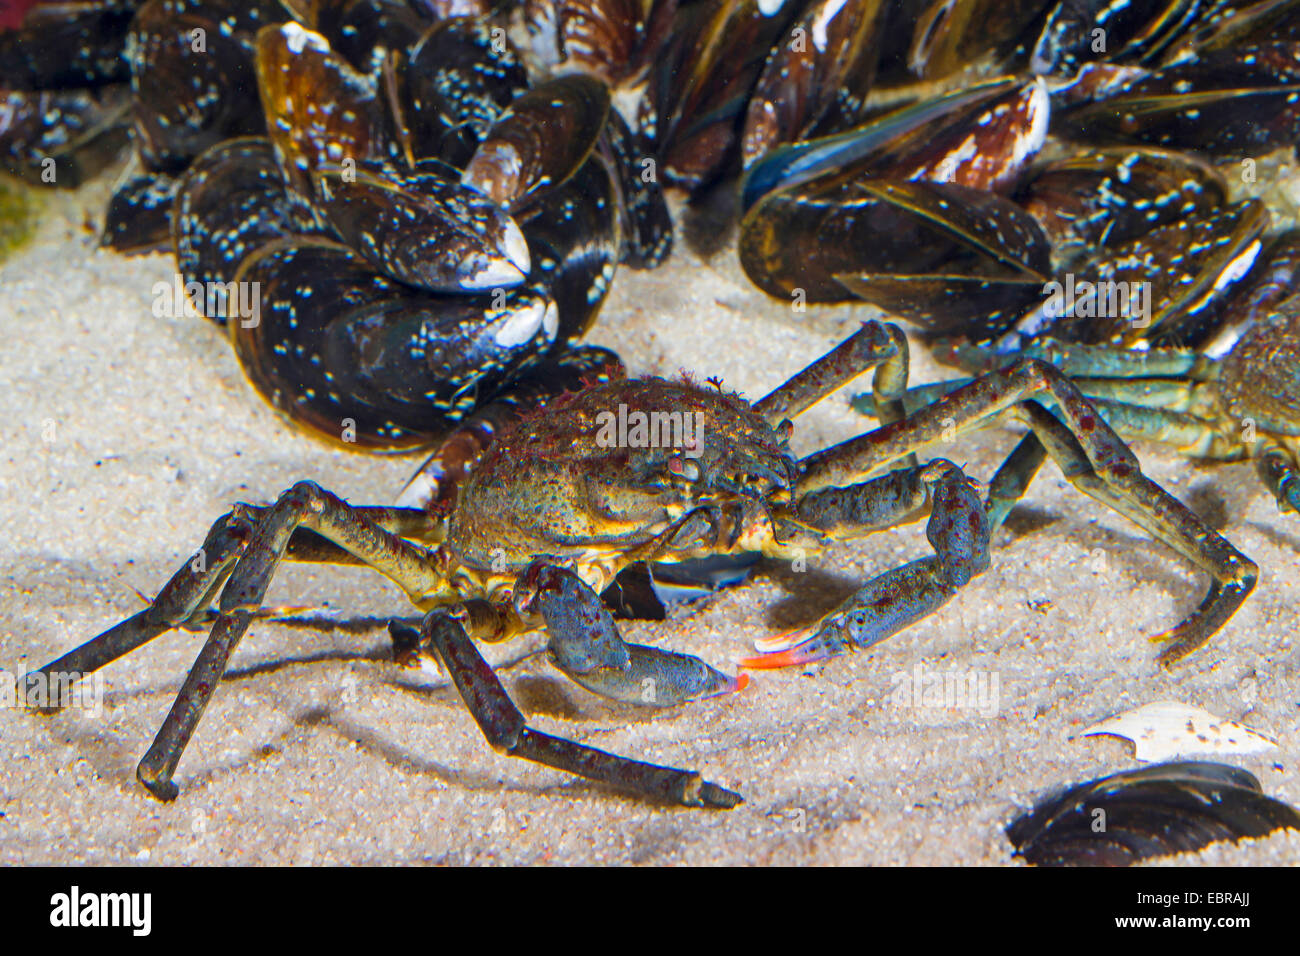 Atlantic lyre crab, great spider crab, toad crab (Hyas araneus), male with mussels - Stock Image